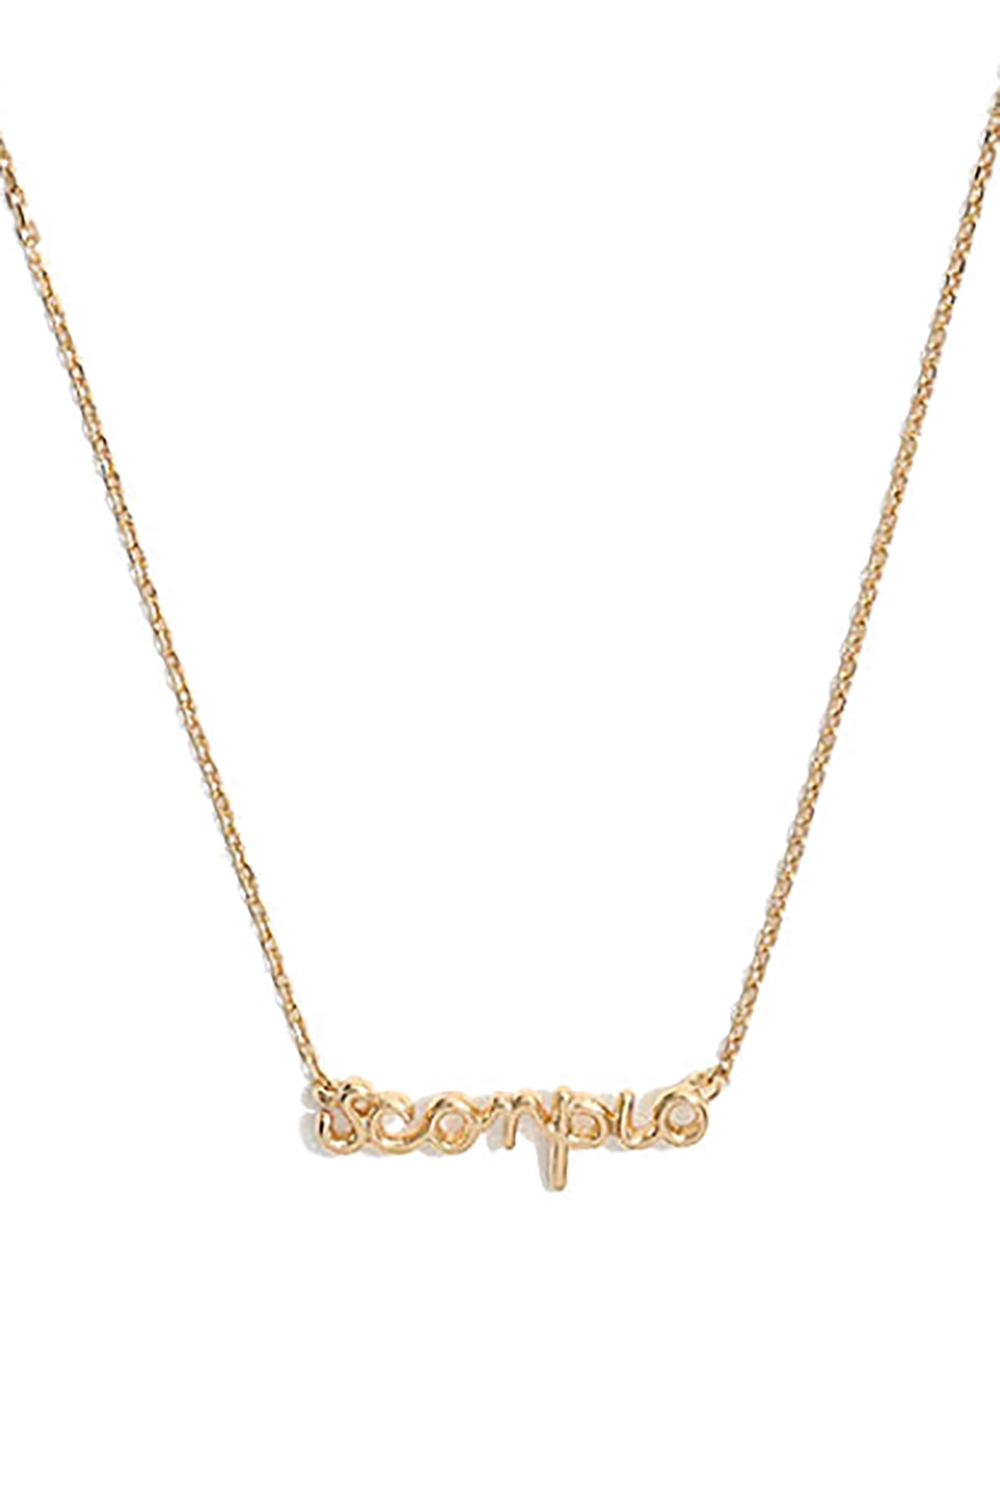 Vermeil Astrological Sign Necklace Madewell $78.00 SHOP IT When you're proud of your sign and you want everyone to know it, put on this sterling silver necklace. It's also available for your Leo friends because...well...you know.